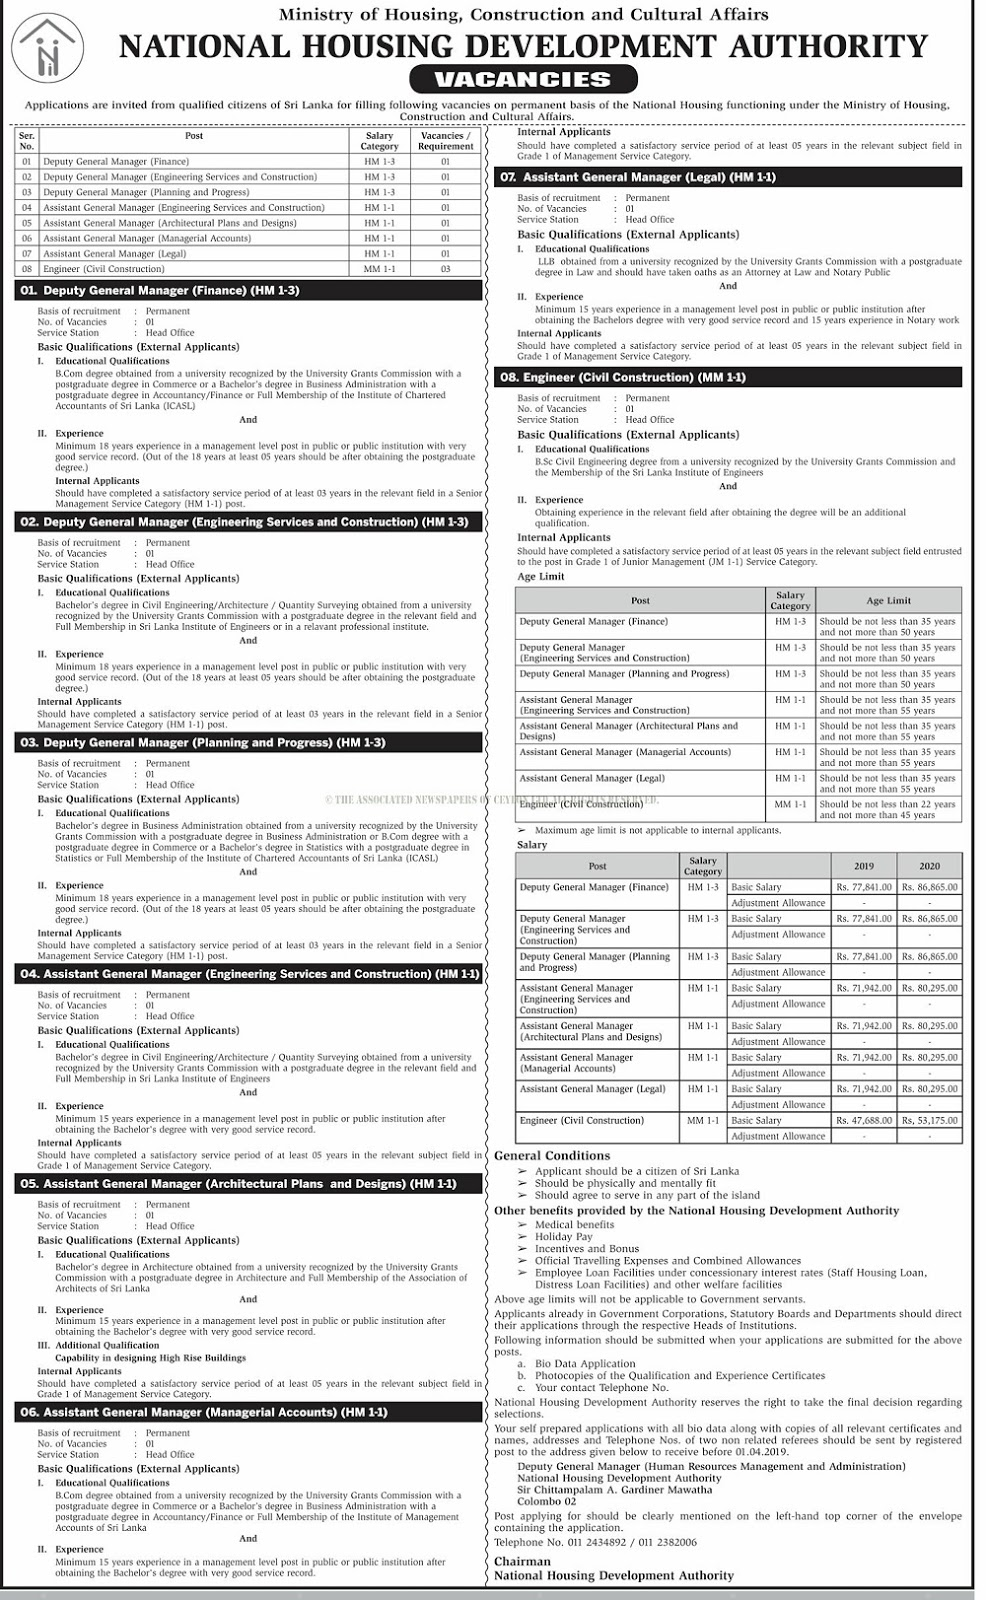 Vacancies at National Housing Development Authority